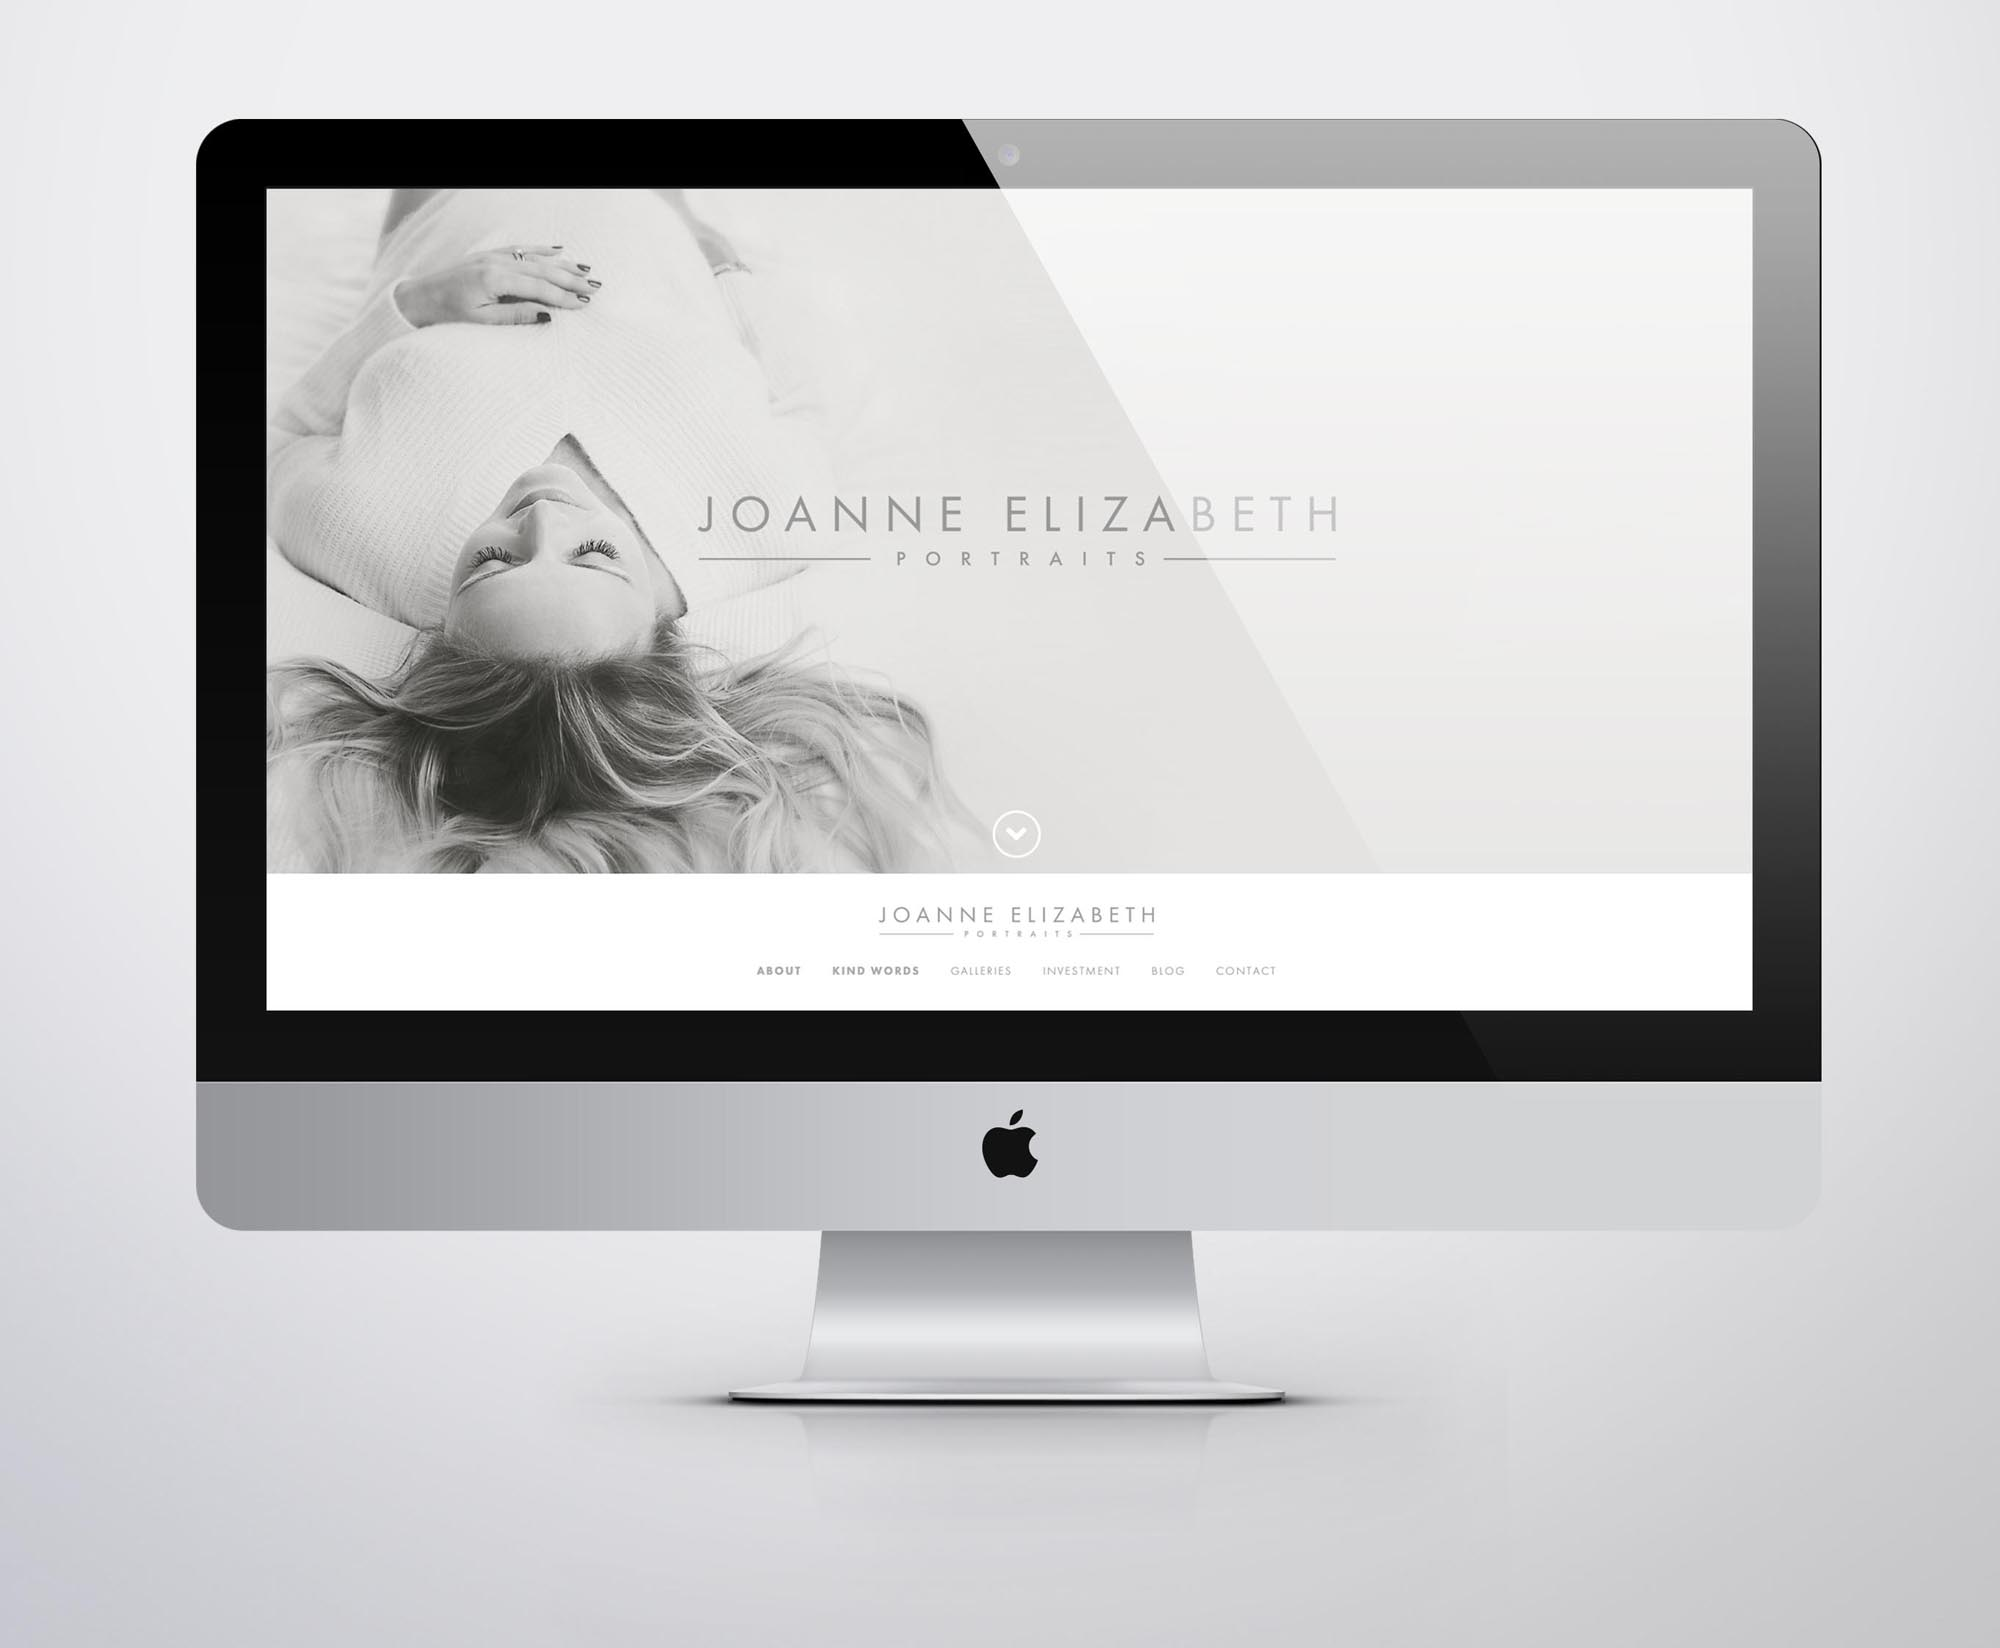 Joanne Elizabeth Portraits London Mobile Friendly Web Design Website Developer